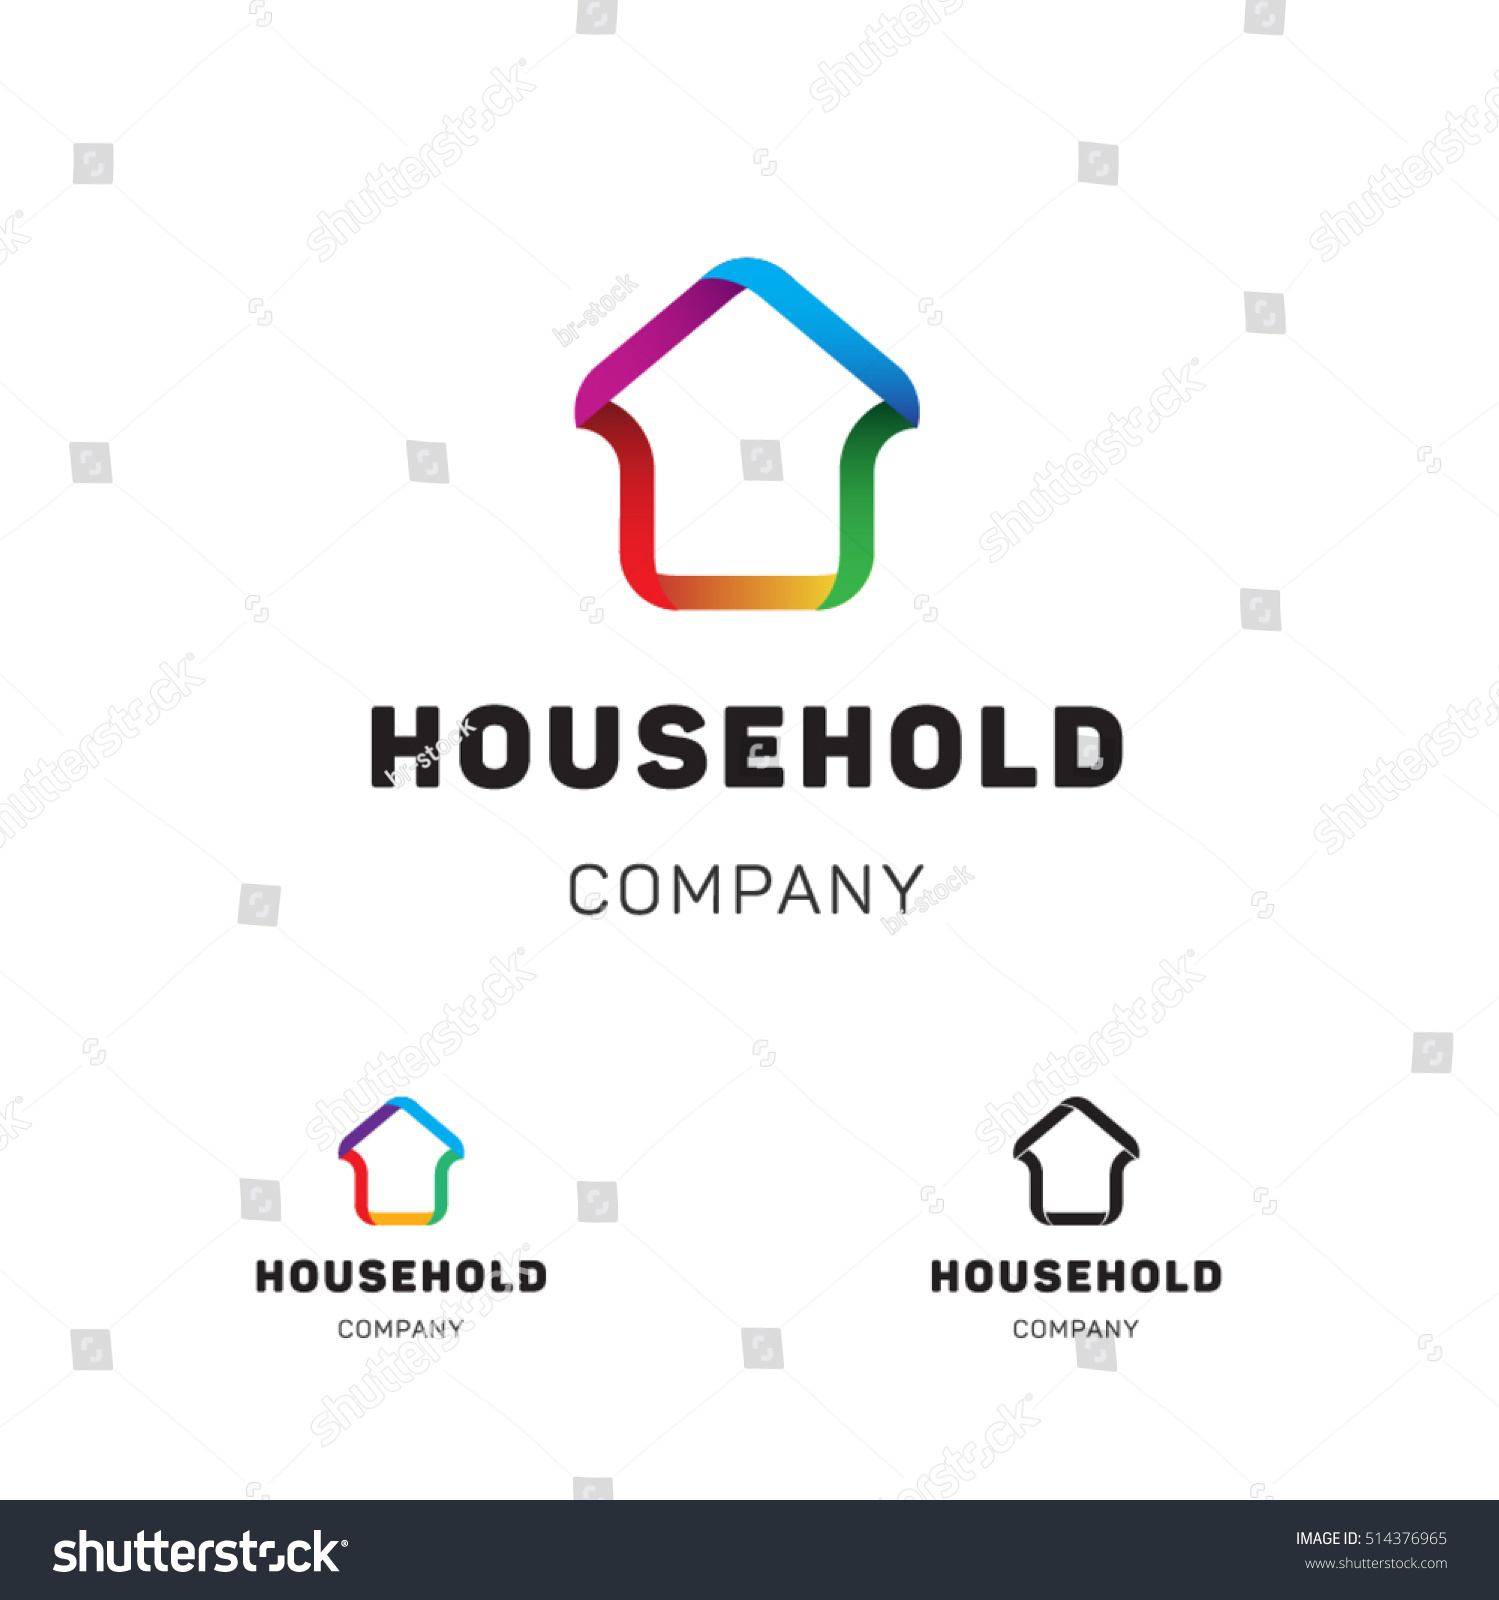 House Hold Vector Logo Template Business Stock Vector (Royalty Free ...